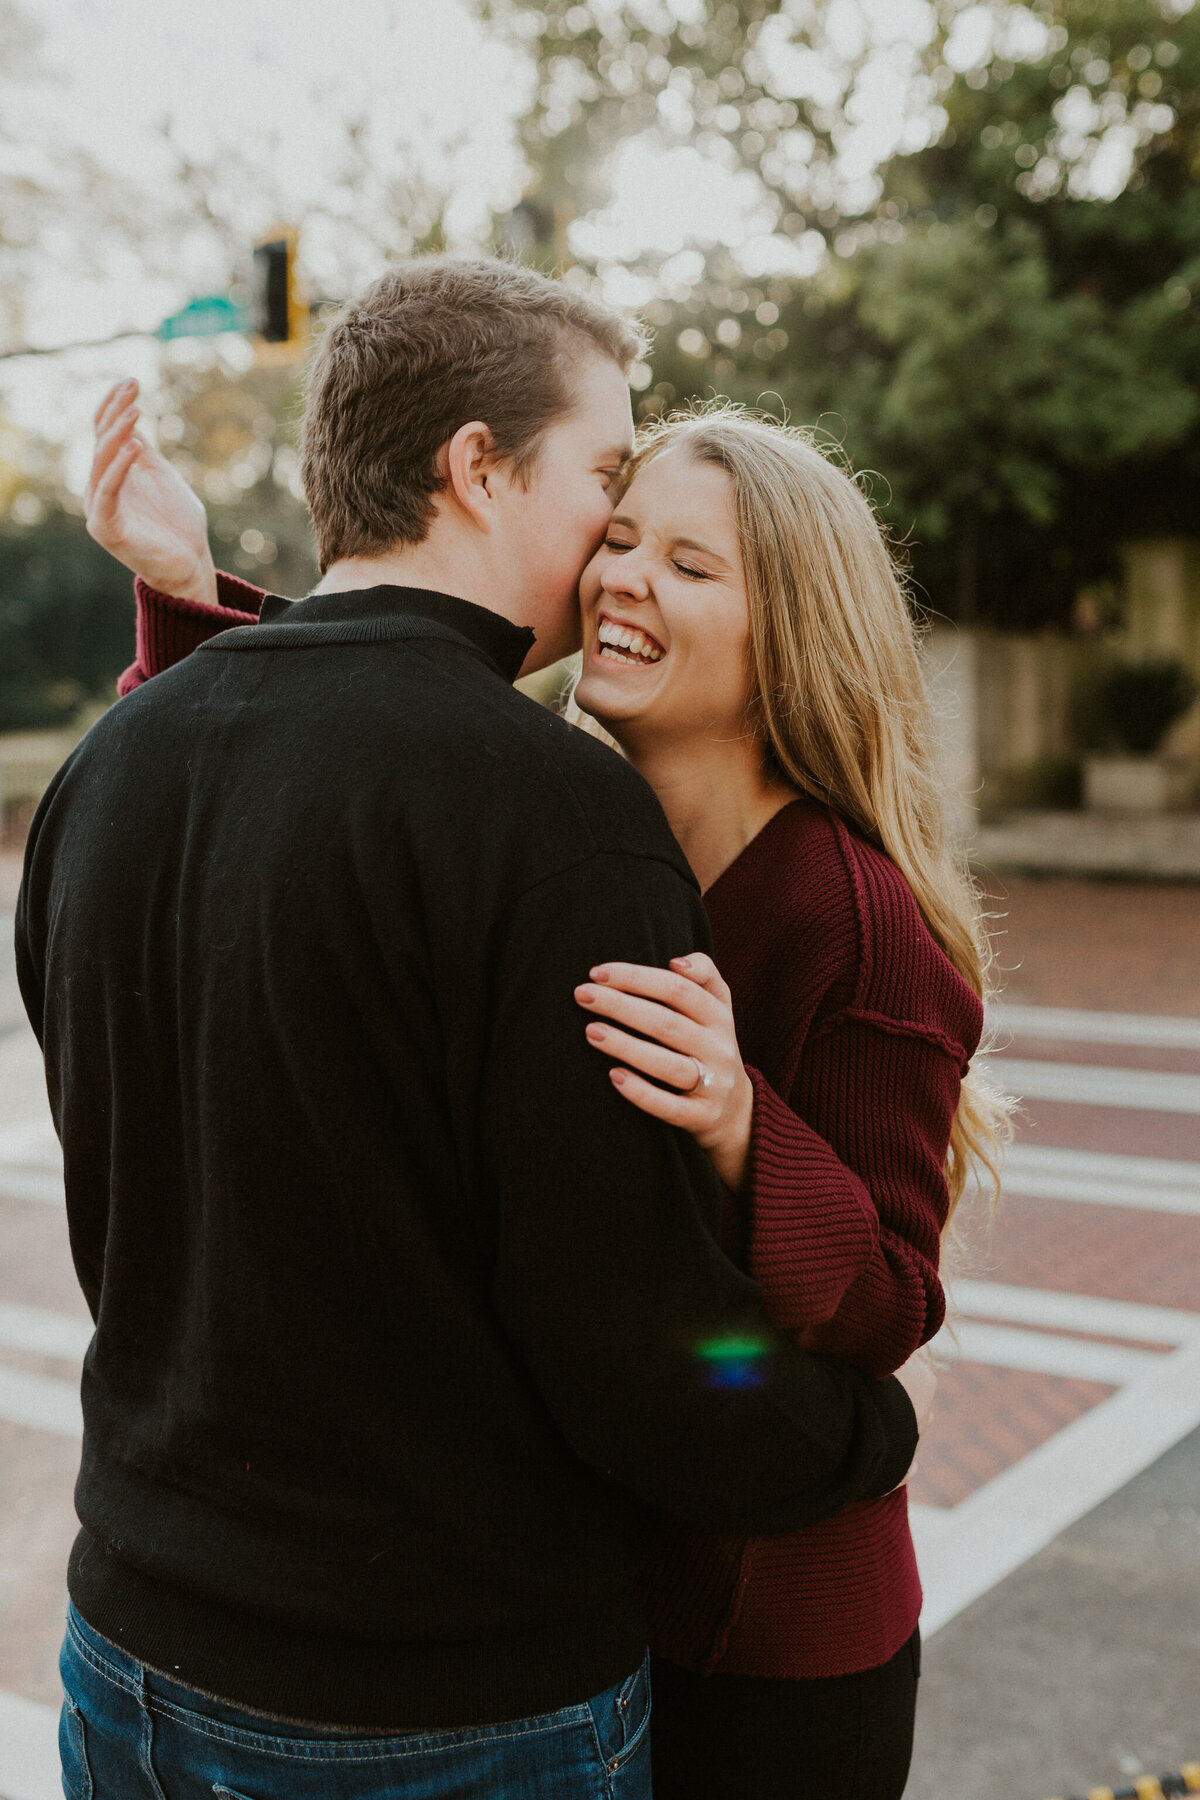 Nicole-Jacob_Athens-Georgia_Engagement-Session_Anna-Ray-Photography-267